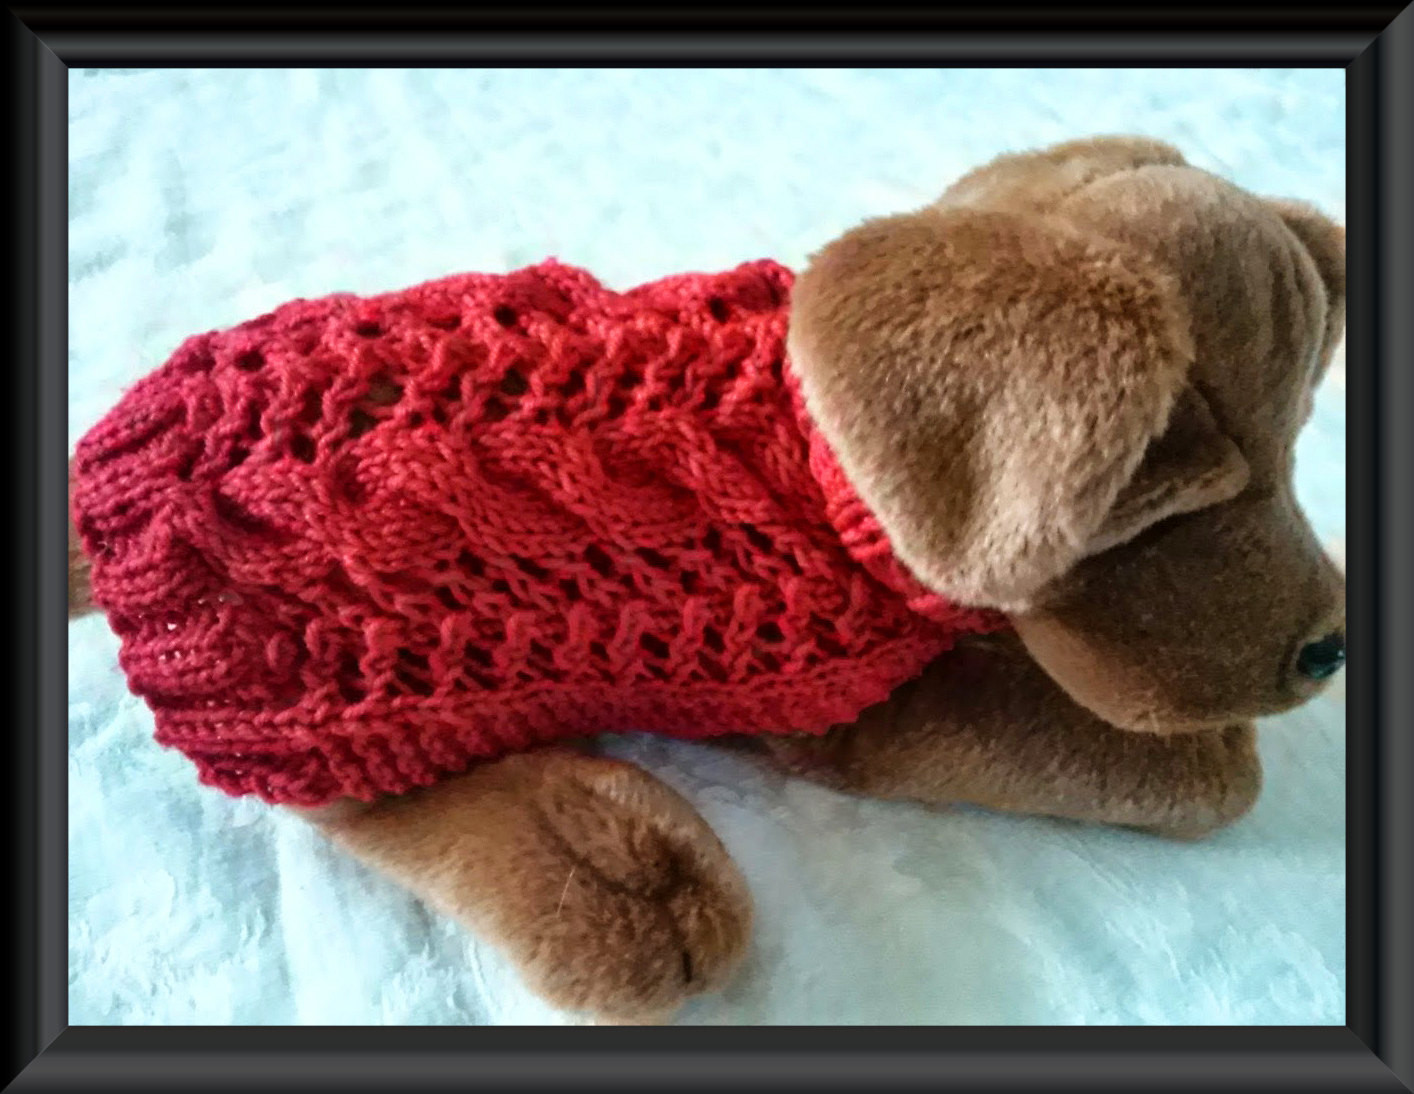 Dog Sweater Knitting Pattern Unique Dog Sweater Knitting Pattern Aran Twists Called Cables and Of Superb 38 Pictures Dog Sweater Knitting Pattern